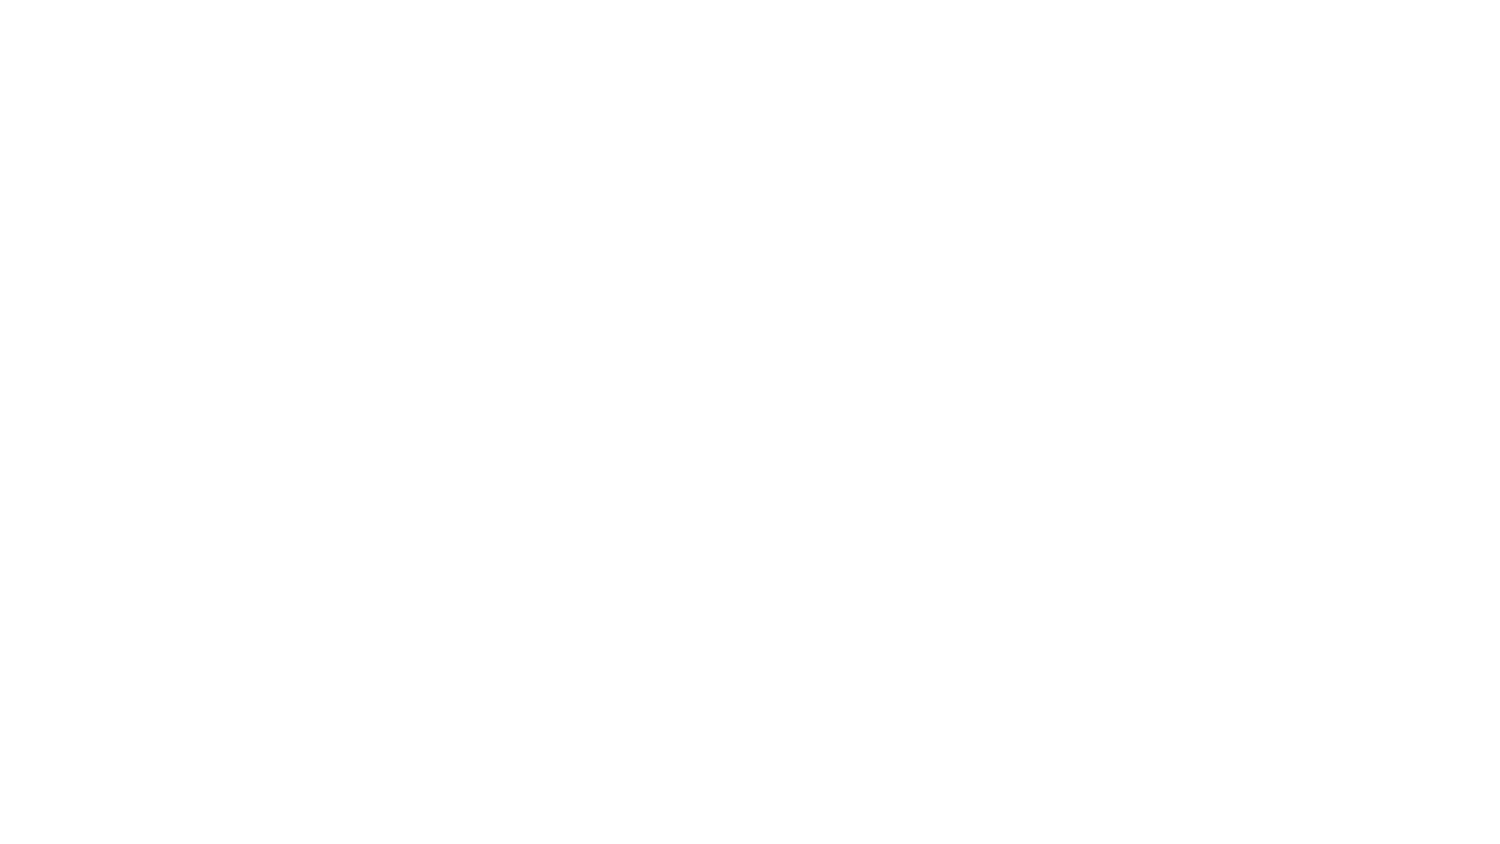 Original Media For Gamers